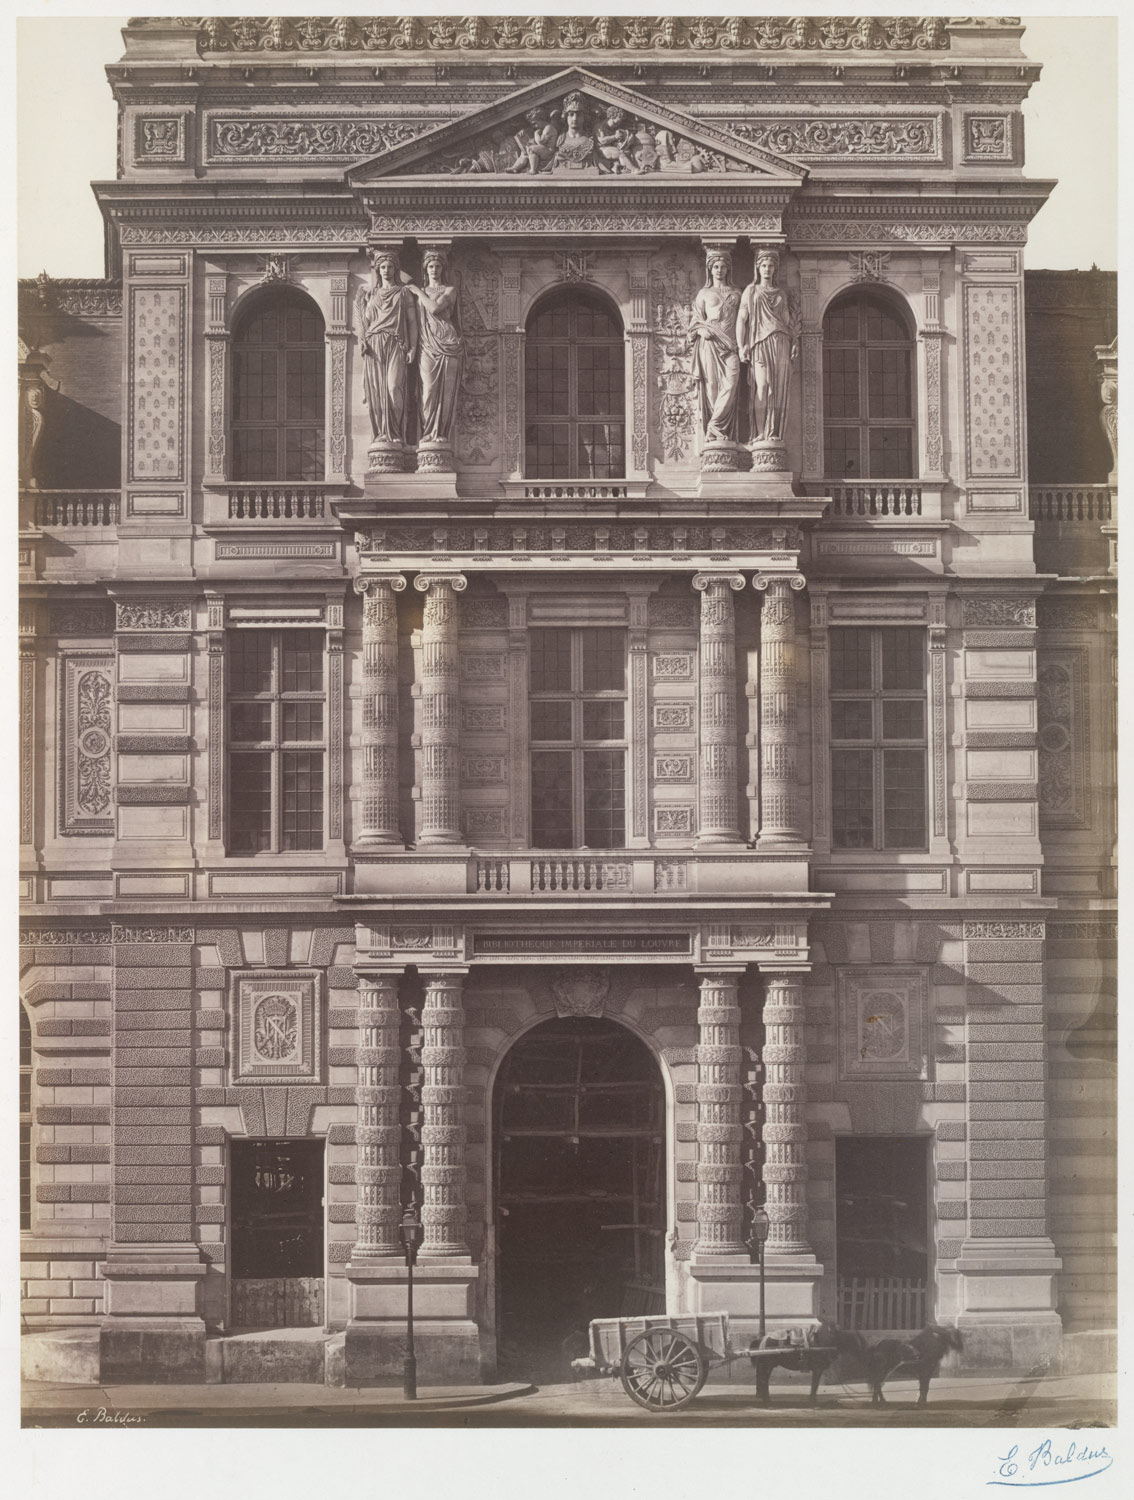 [Imperial Library of the Louvre]